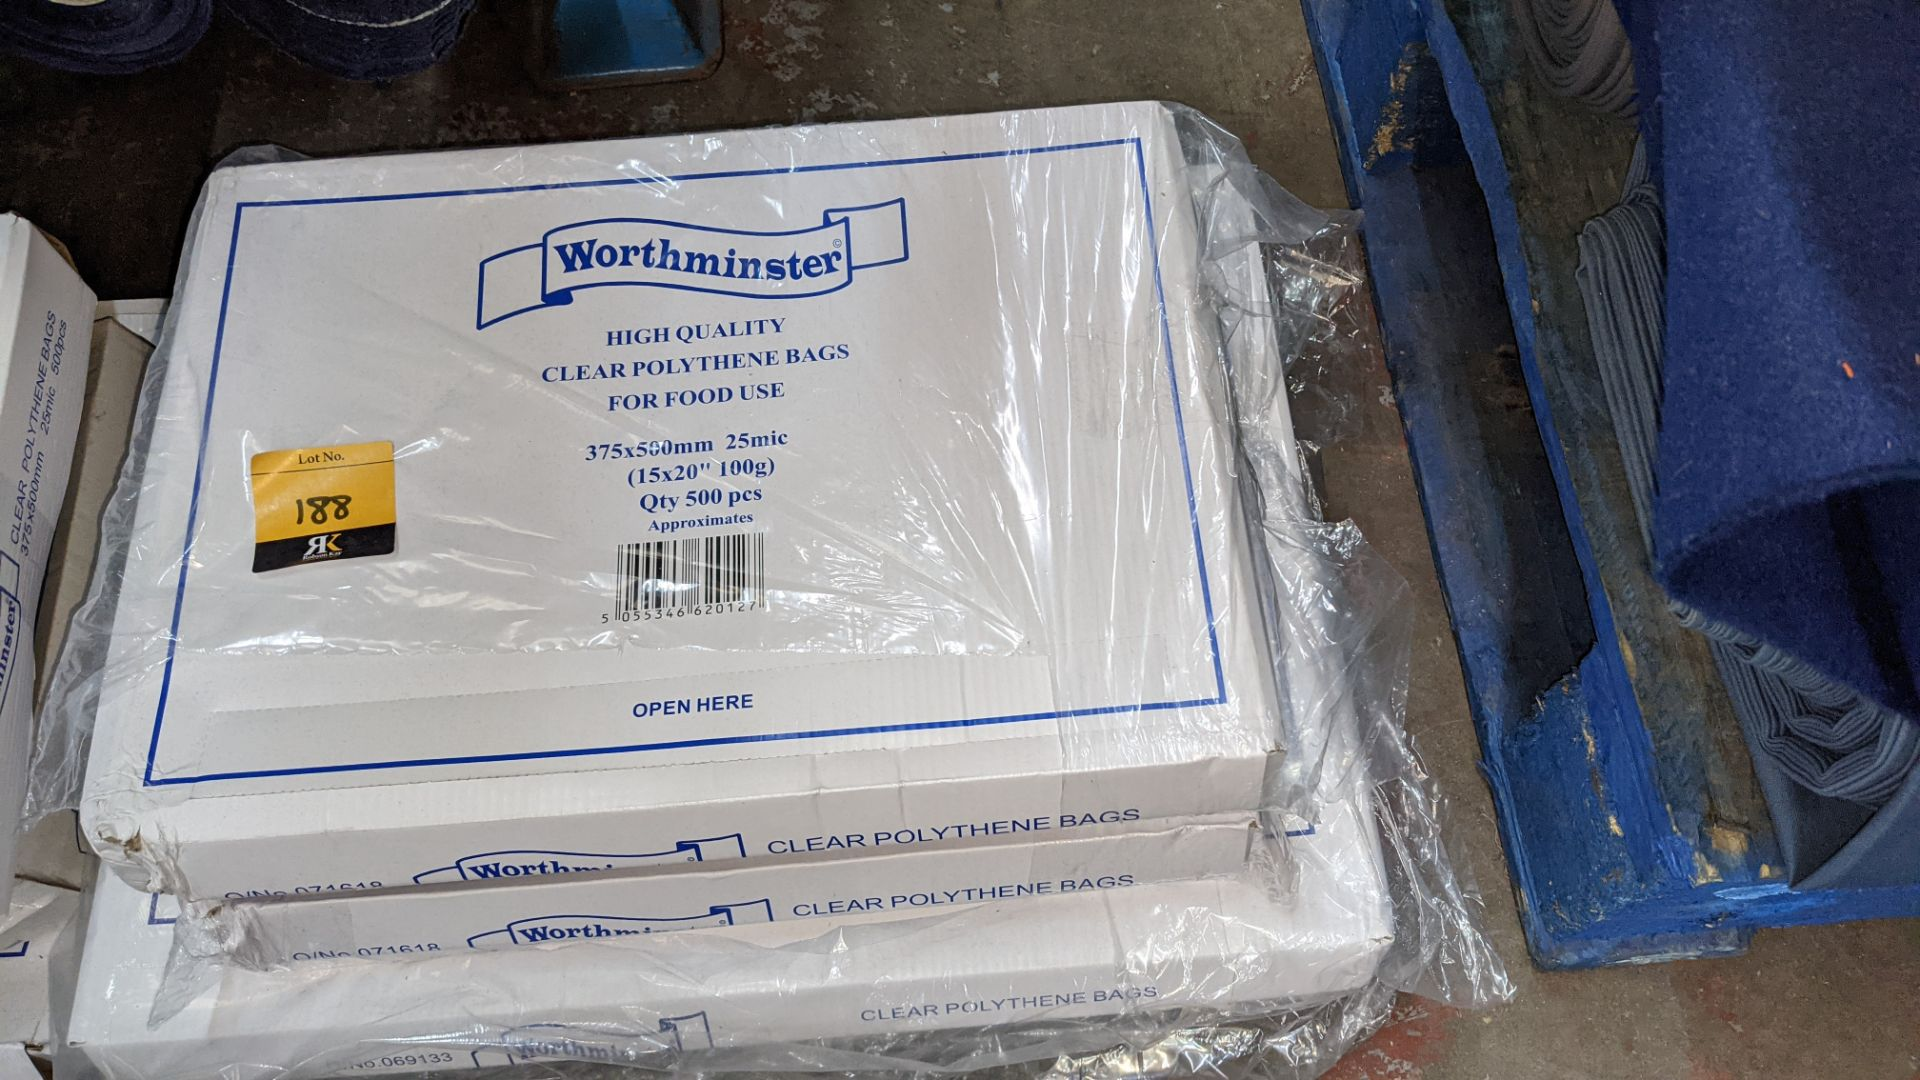 4 boxes of clear food bags by Worthminster - Image 3 of 5